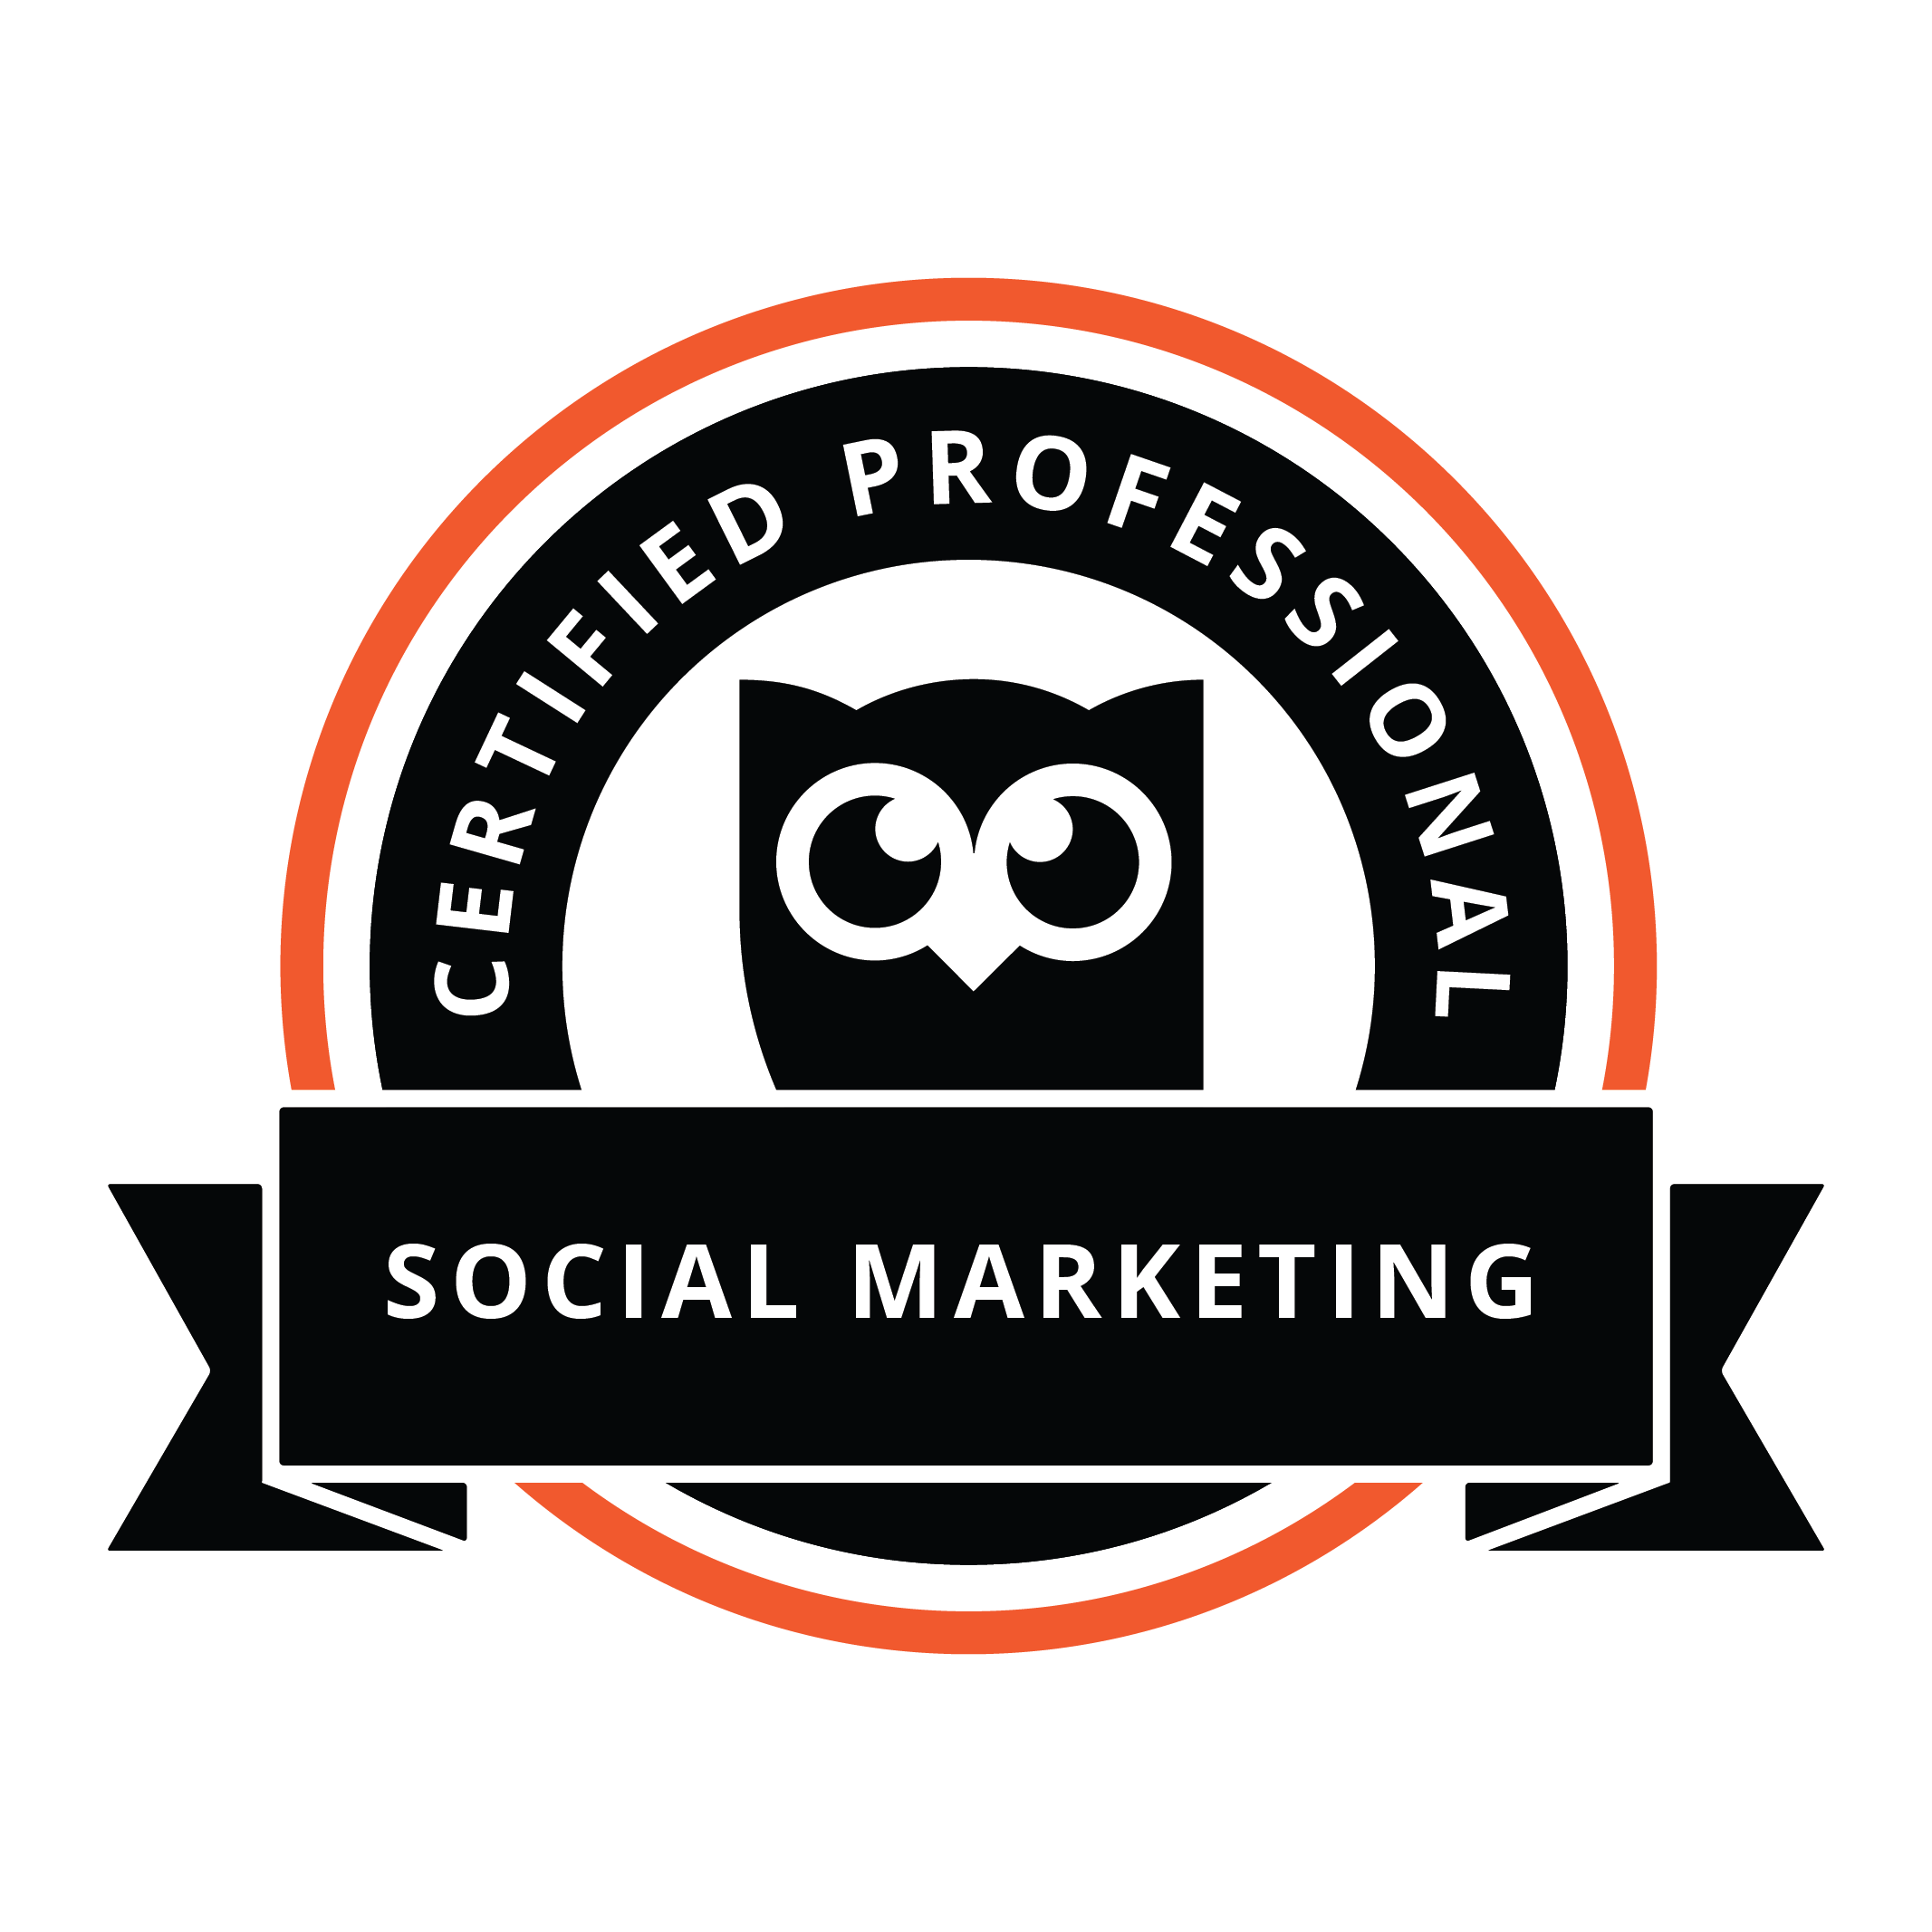 Hootsuite Certified in Social Media Marketing